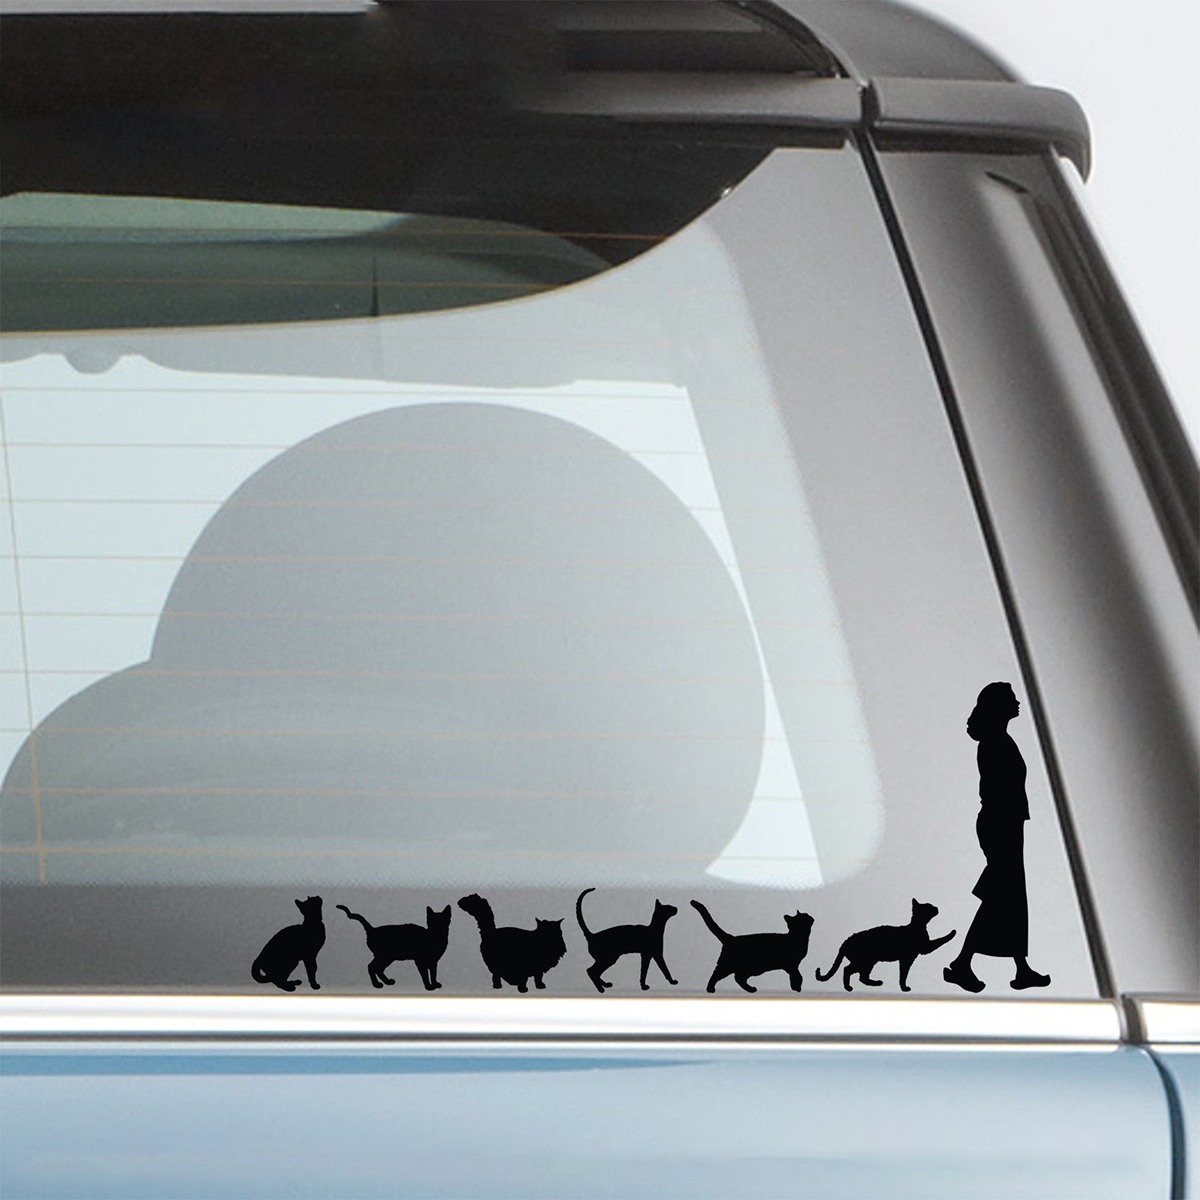 Image 4 - 20*7.8cm Cats Crazy Cat Lady Woman Cute Funny Car Window Decal Bumper Sticker Pet Pets Vinyl Car Wrap Decor Decals-in Car Stickers from Automobiles & Motorcycles